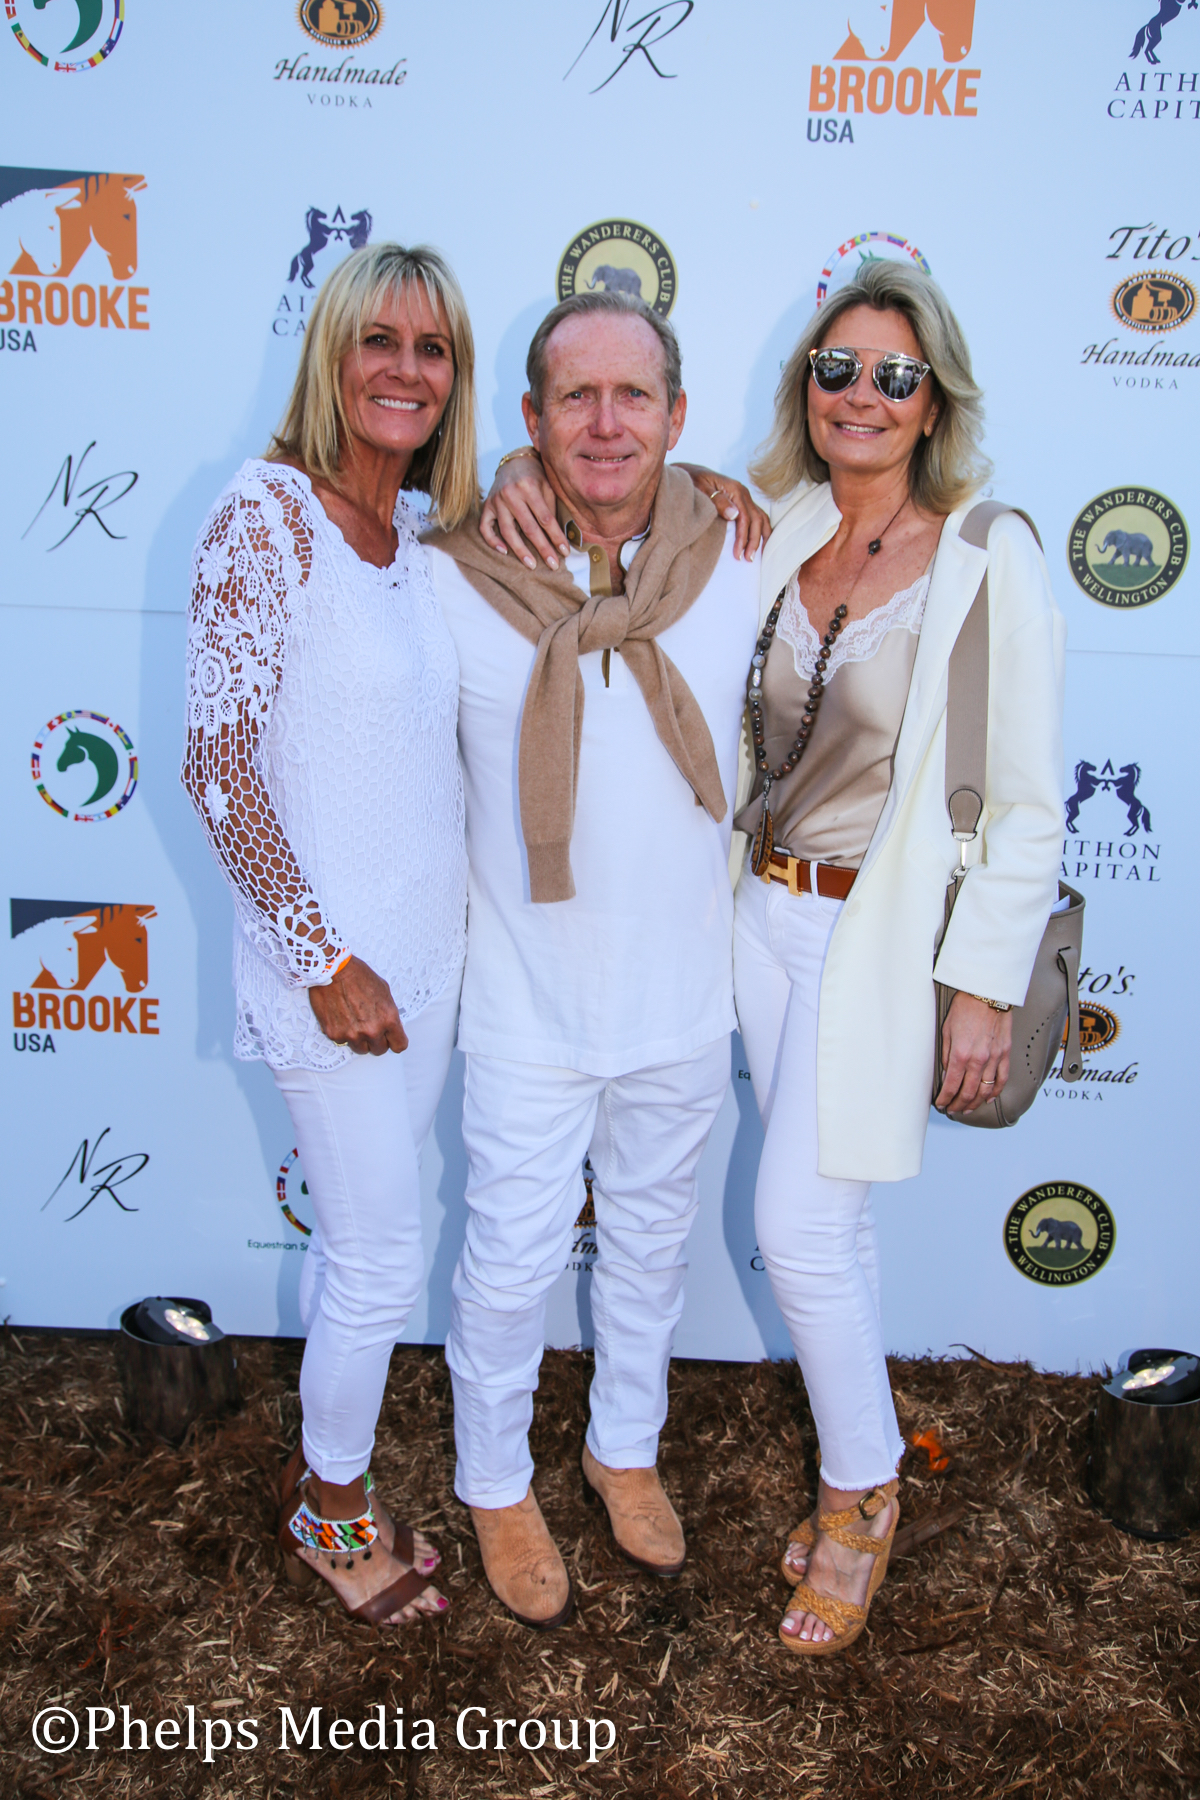 Jessie Coppola Martin and Stephanie Brown; Nic Roldan's 2nd Annual Sunset Polo & White Party, FL, by Phelps Media.jpg